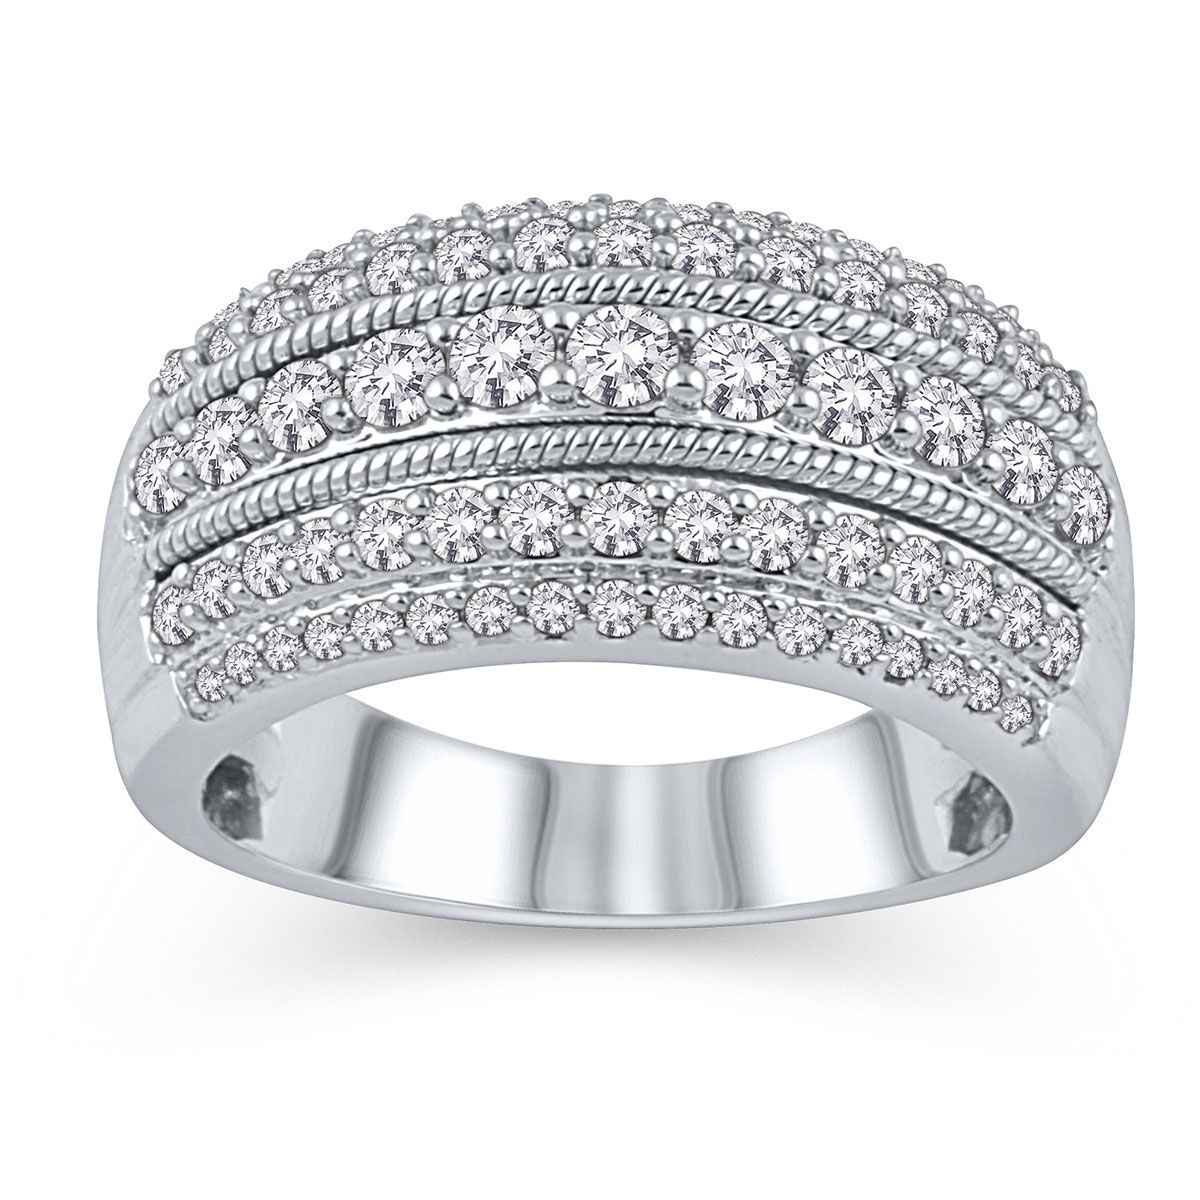 Five Row Diamond Anniversary Band In 14K White Gold, 1Ctw With Recent Diamond Five Row Anniversary Rings In White Gold (View 15 of 25)